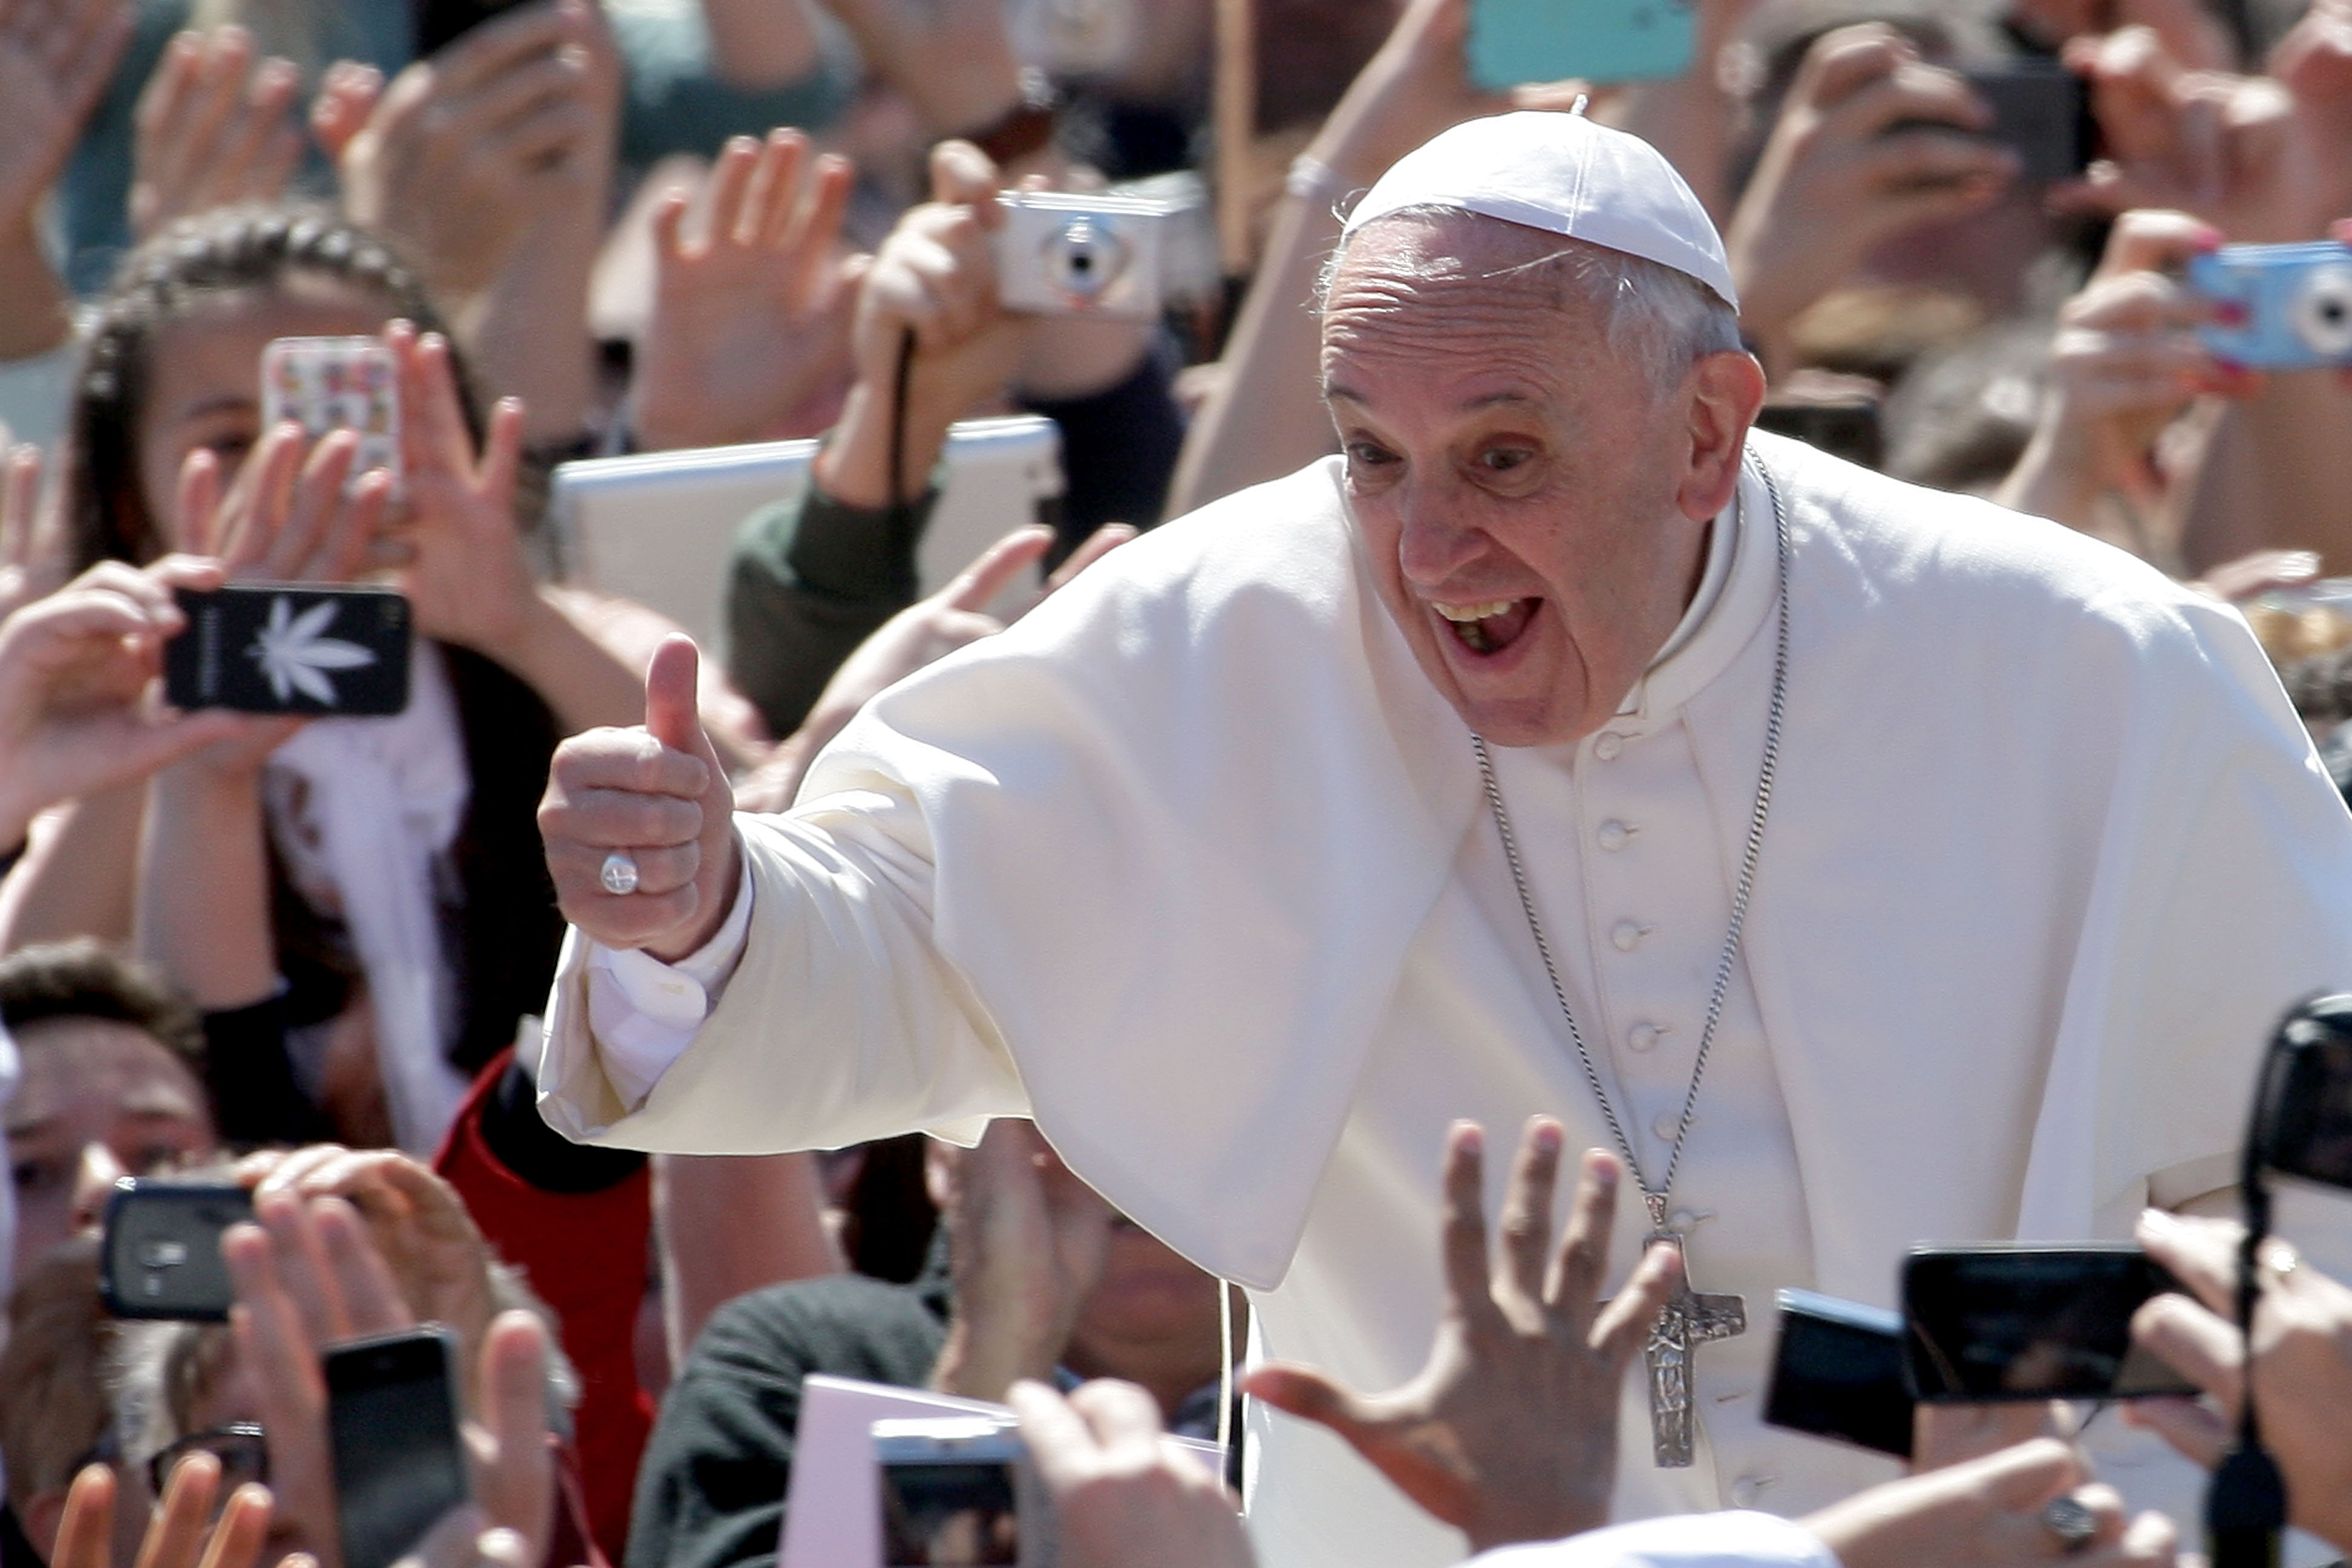 Pimples on the pope